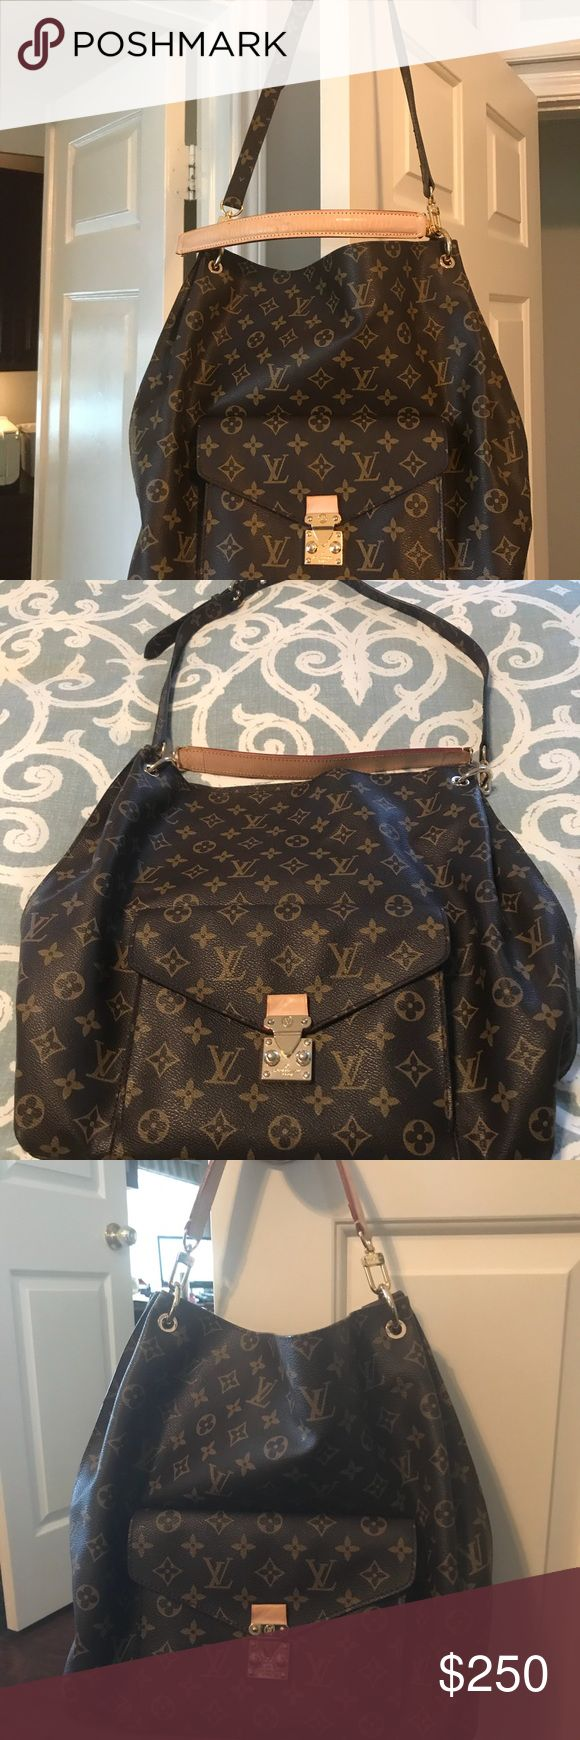 """Louis Vuitton Large Tote/ Hobo Gorgeous Louis Vuitton large hobo/tote. I bought this bag on eBay two years ago. I have the dust bag and care booklet from Louis Vuitton, but I cannot swear to it's authenticity. However, I have seen real Louis Vuitton purses, and defy anyone to say it isn't authentic. Have used it several times, but found it to be larger than I was comfortable with. in perfect condition, no cracks in the leather, no stains or wear on the interior. Dimensions are 14""""x14""""x5""""…"""